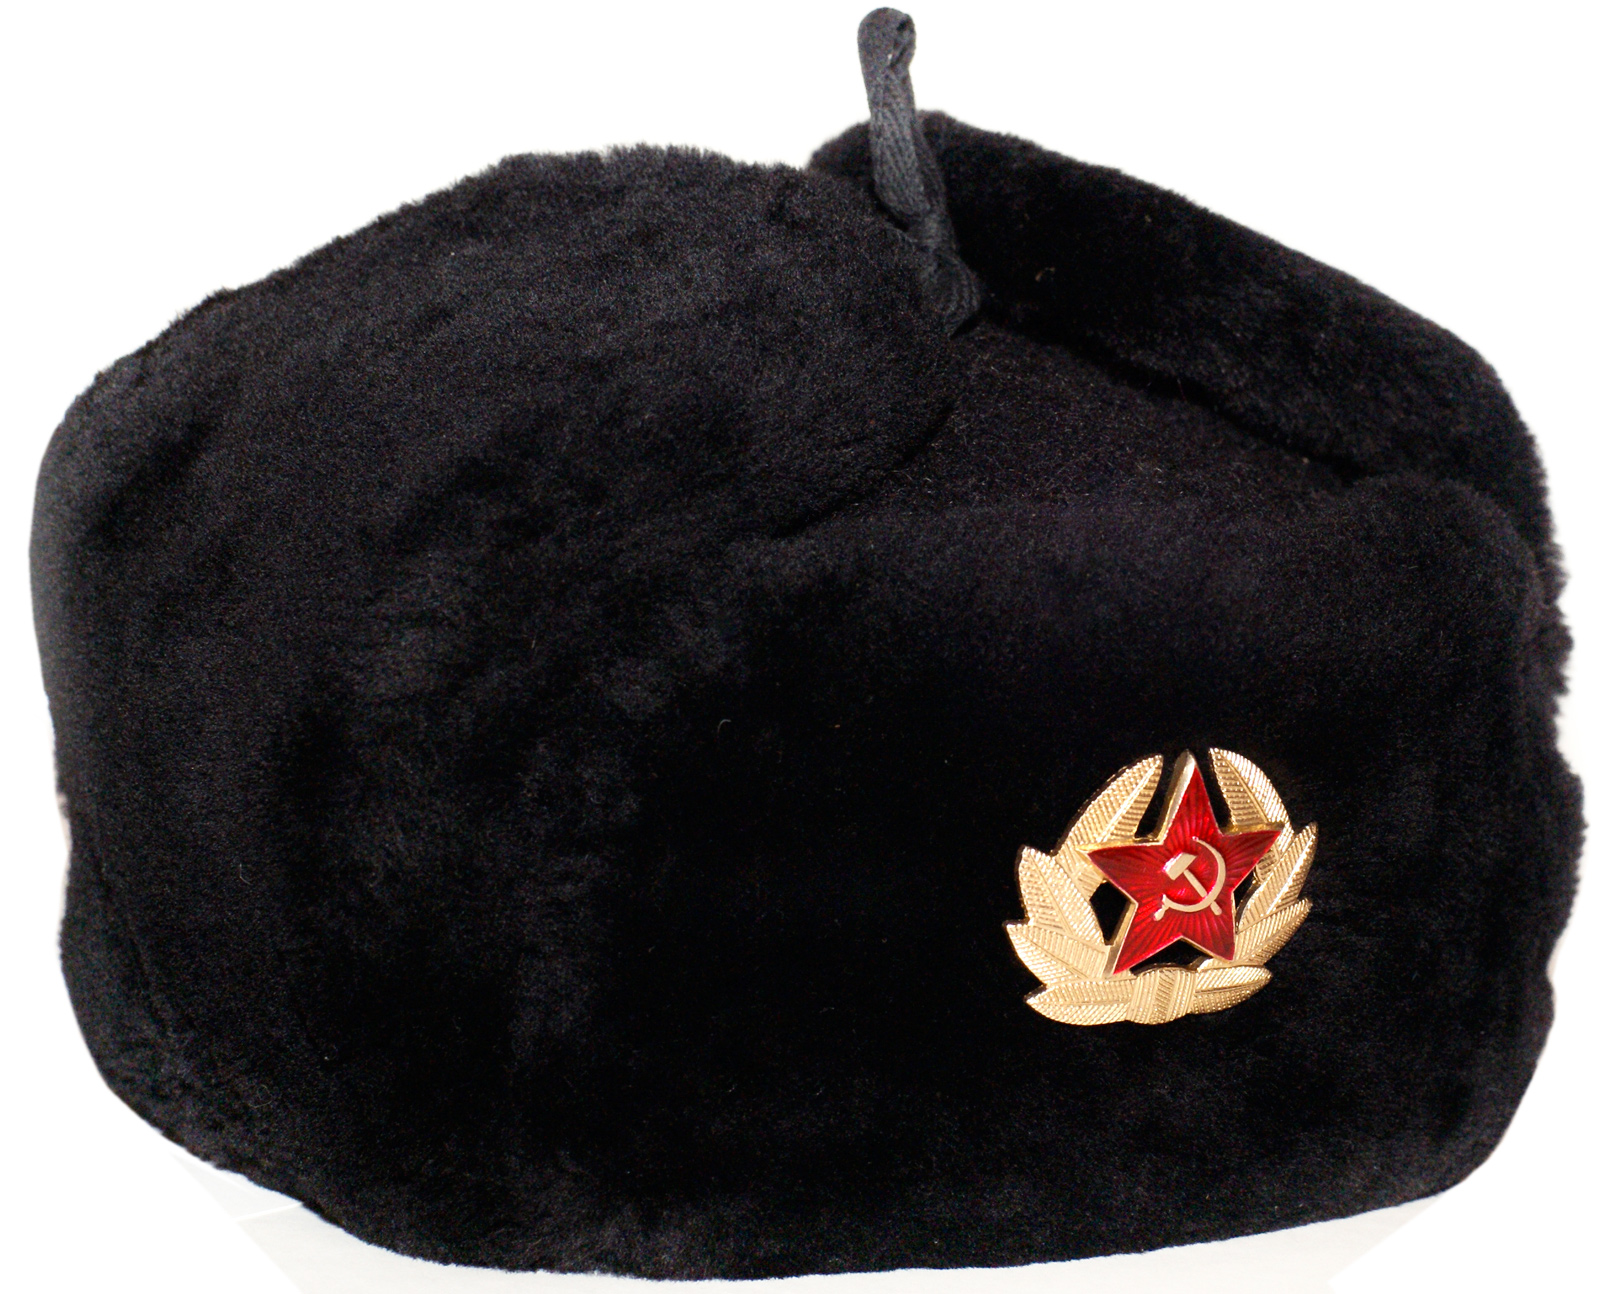 """Man of Yakutia, Ru, sell """"one and only hat (beanie) made of Mammoth wool. Price is $10, and has a certificate of authenticity."""" """"My uncle was collecting mammoth wool in permafrost."""